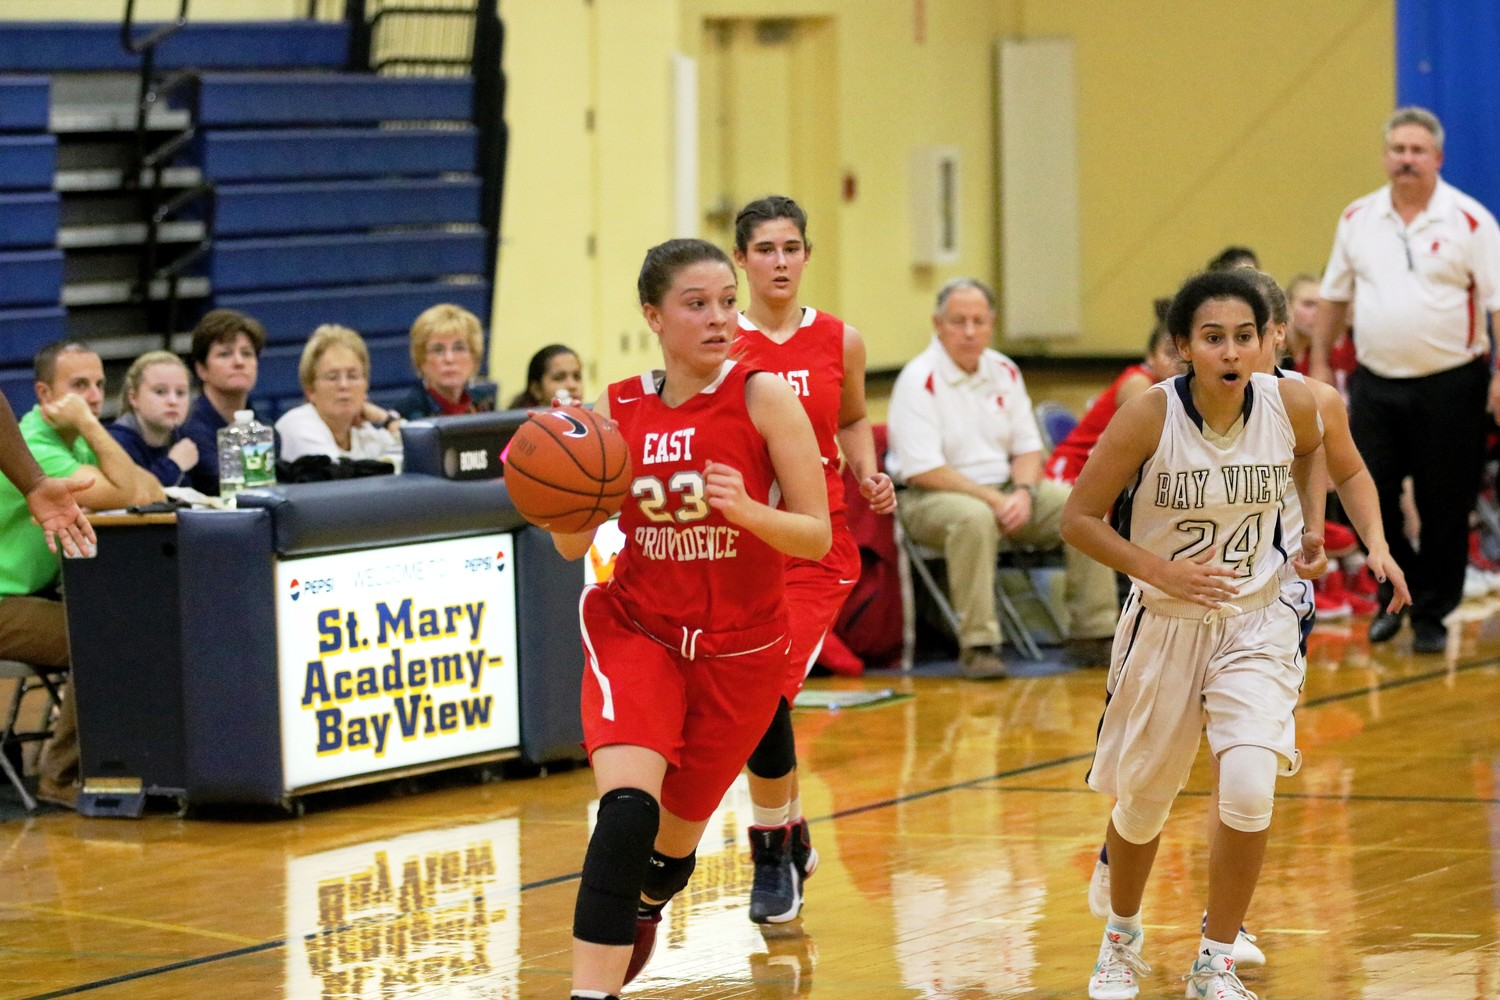 Hailey Hannon of EP in basketball action.  Photo by Paul Tumidajski.